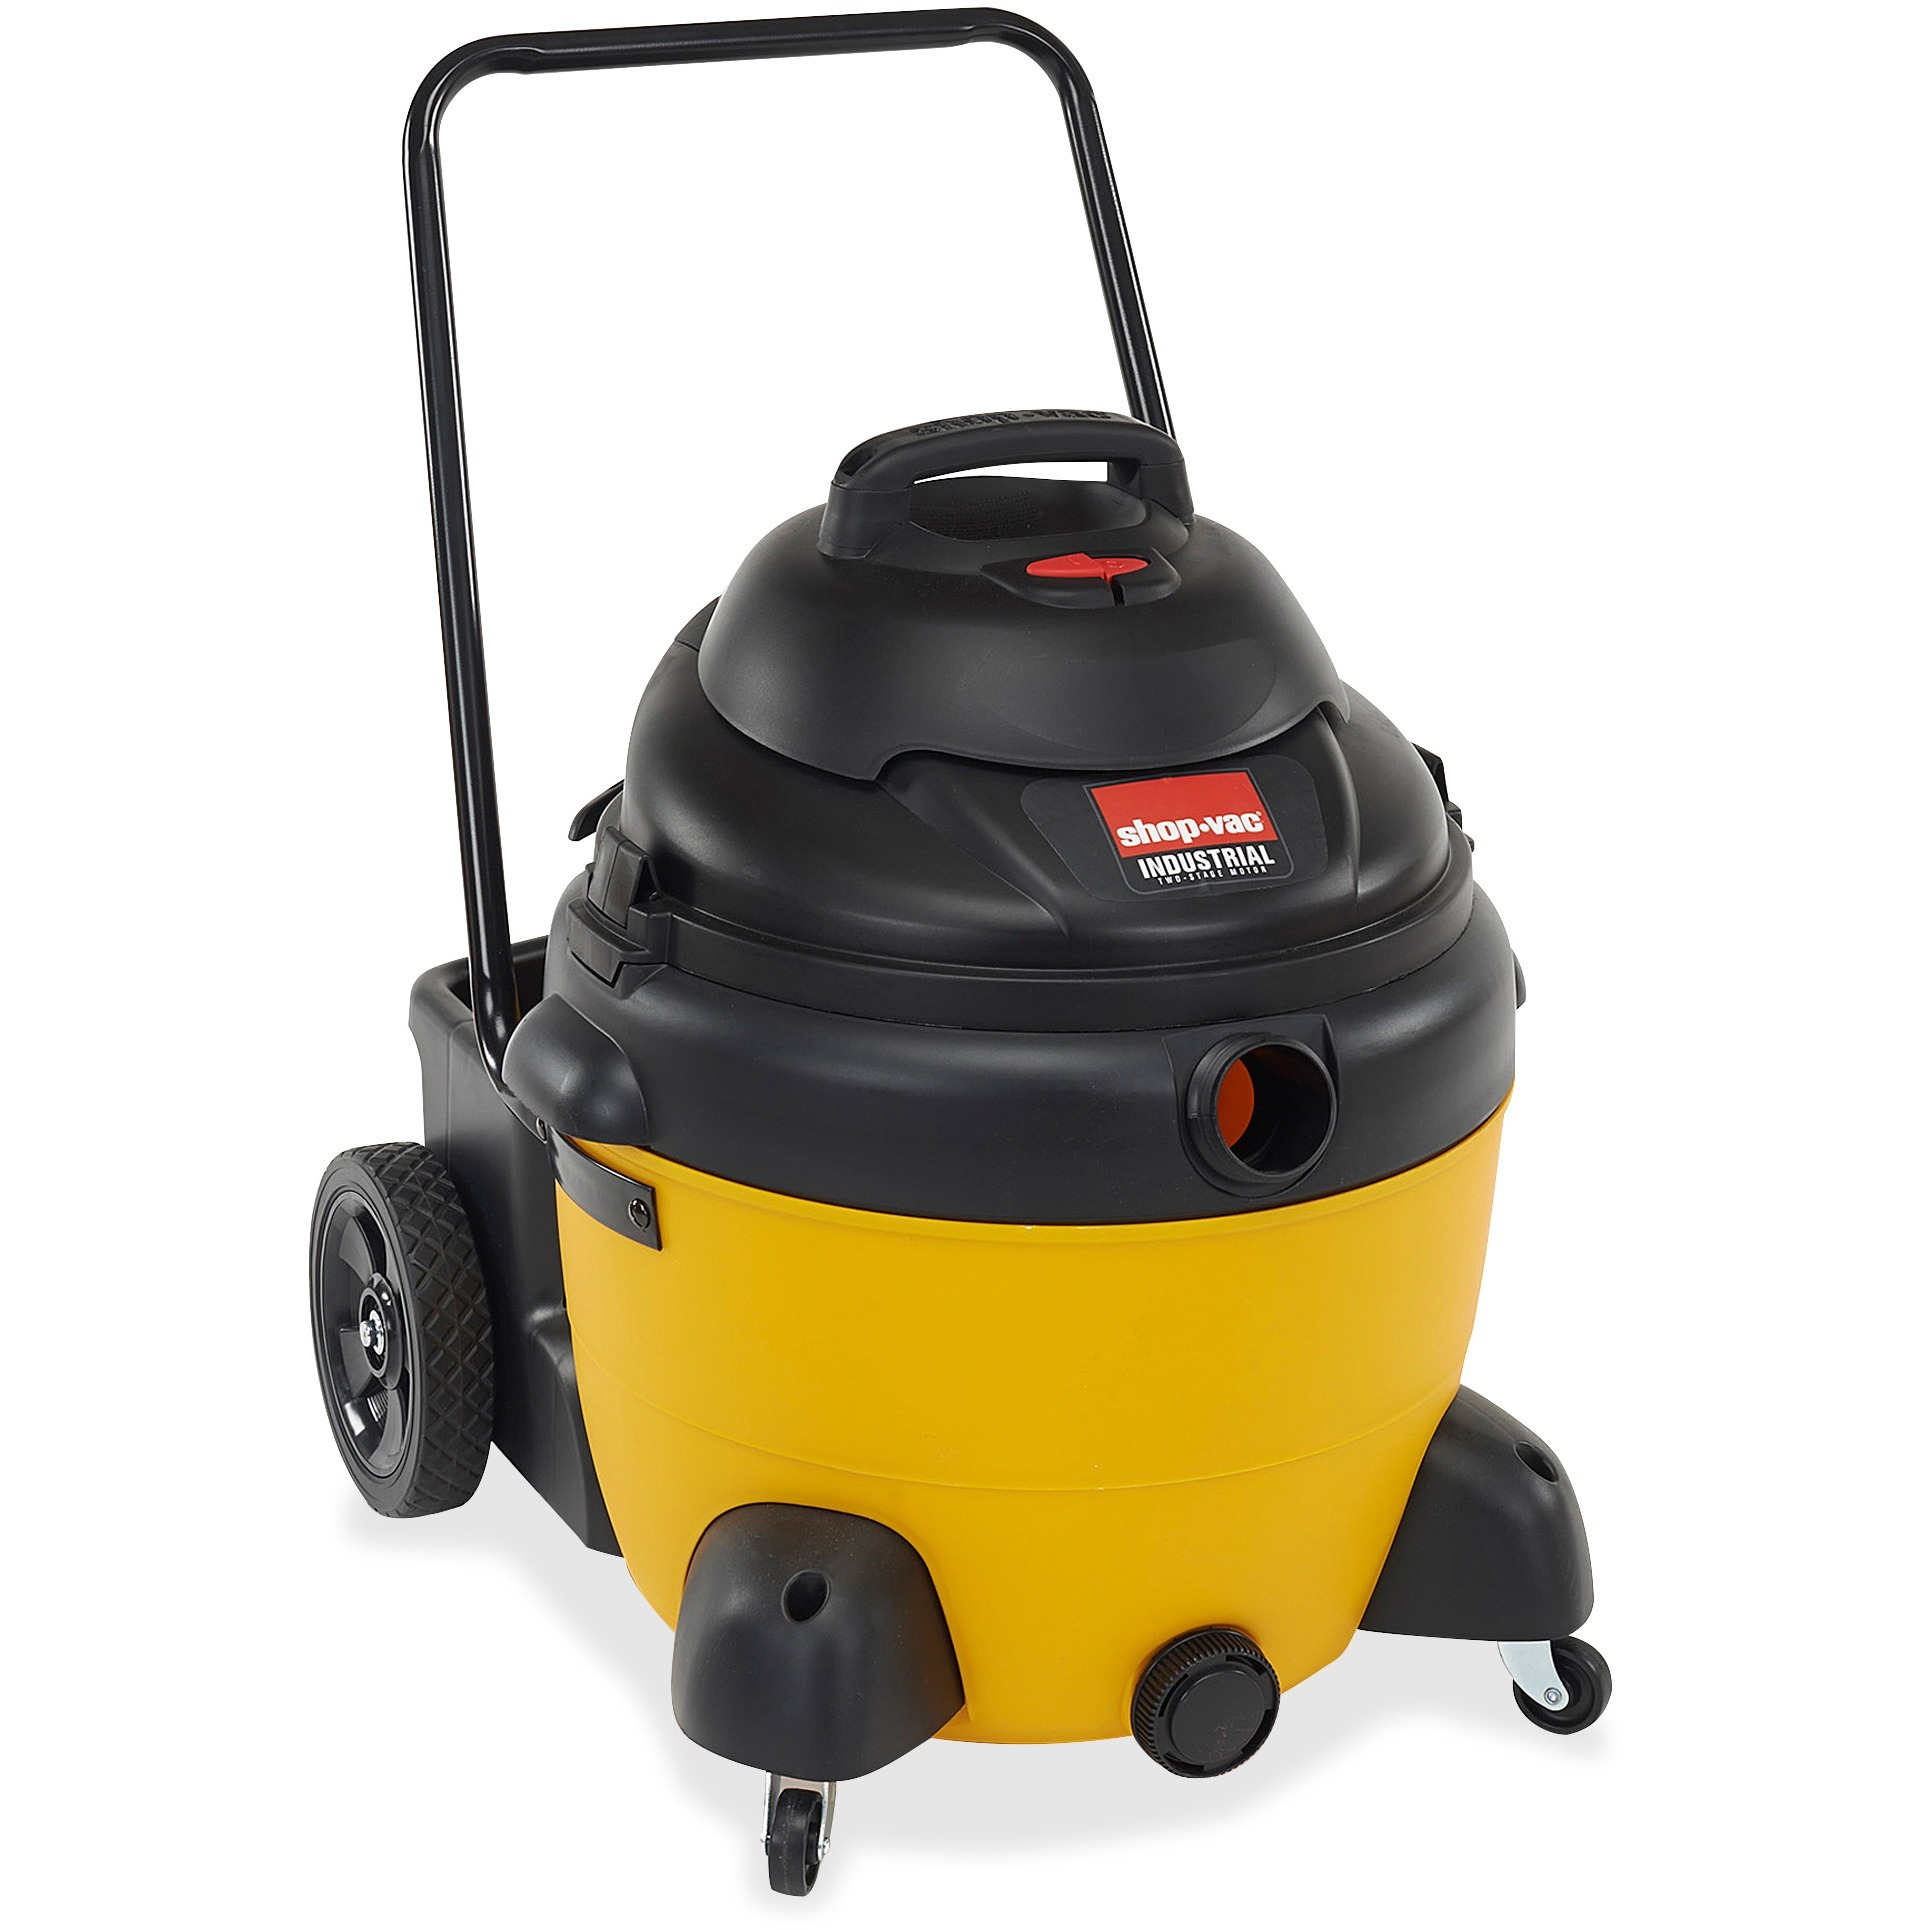 Shop-Vac, SHO9623910, Industrial 16Gal Wet/Dry Vacuum, Yellow,Black